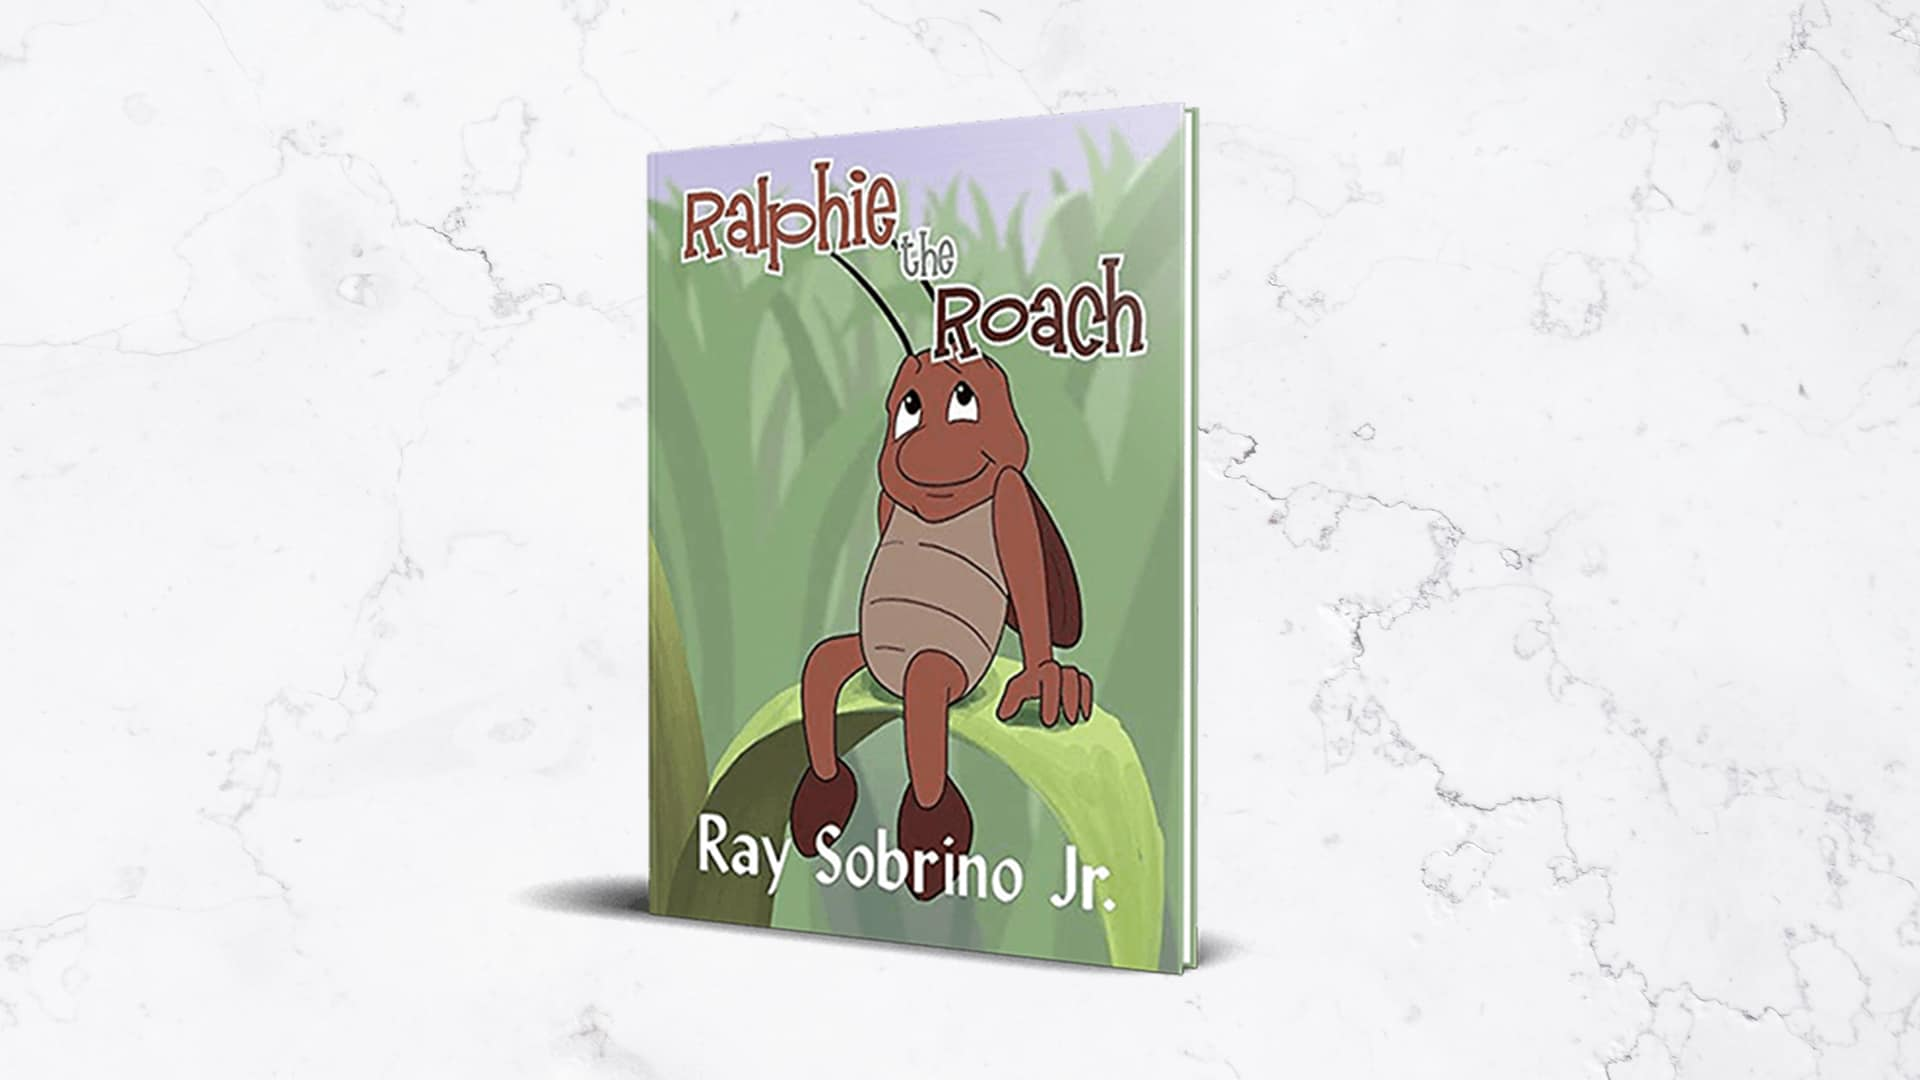 Ralphie the Roach by Ray Sobrino Jr banner